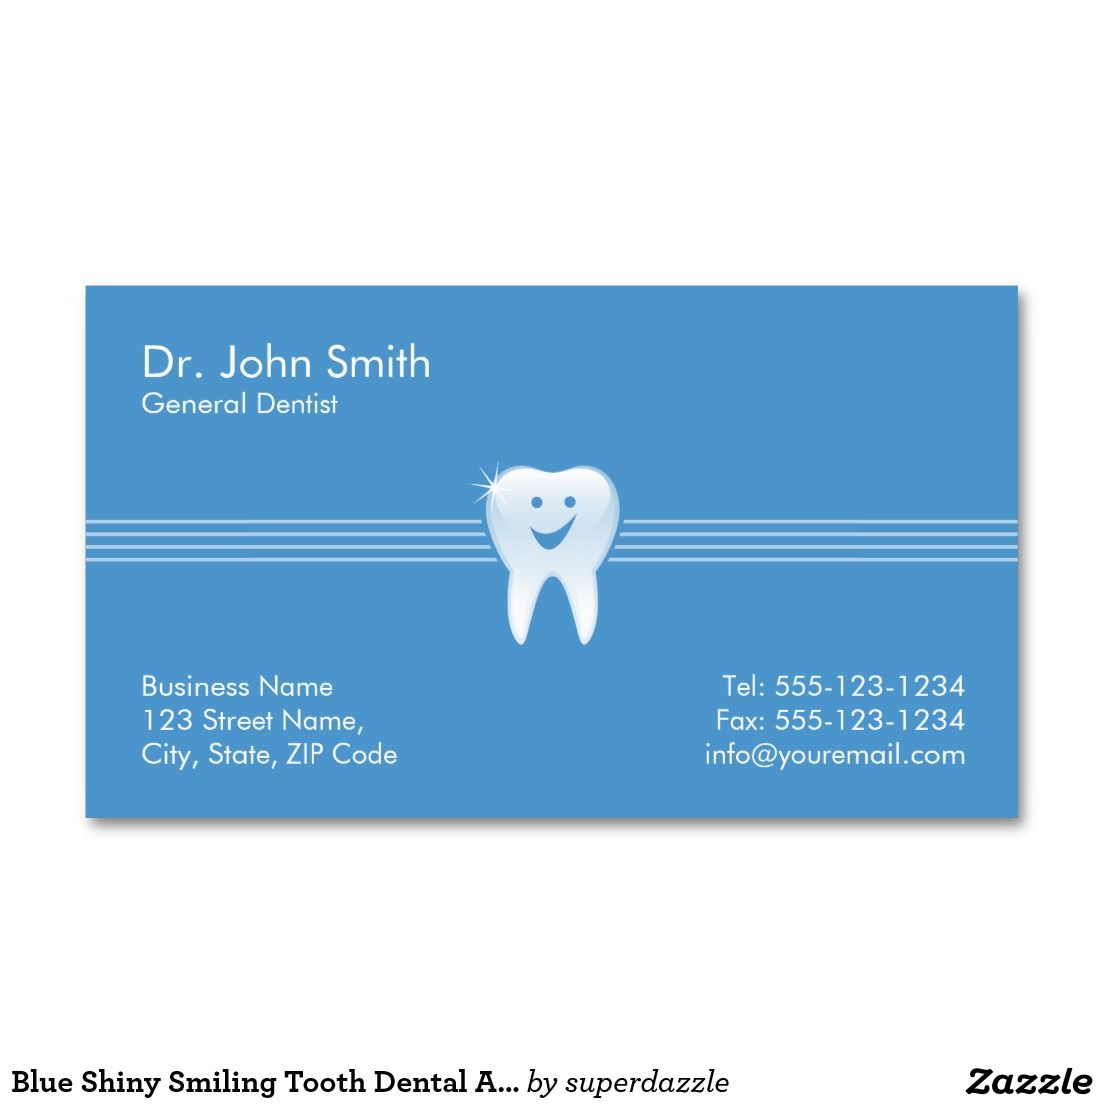 Blue Shiny Smiling Tooth Dental Appointment Business Card ...